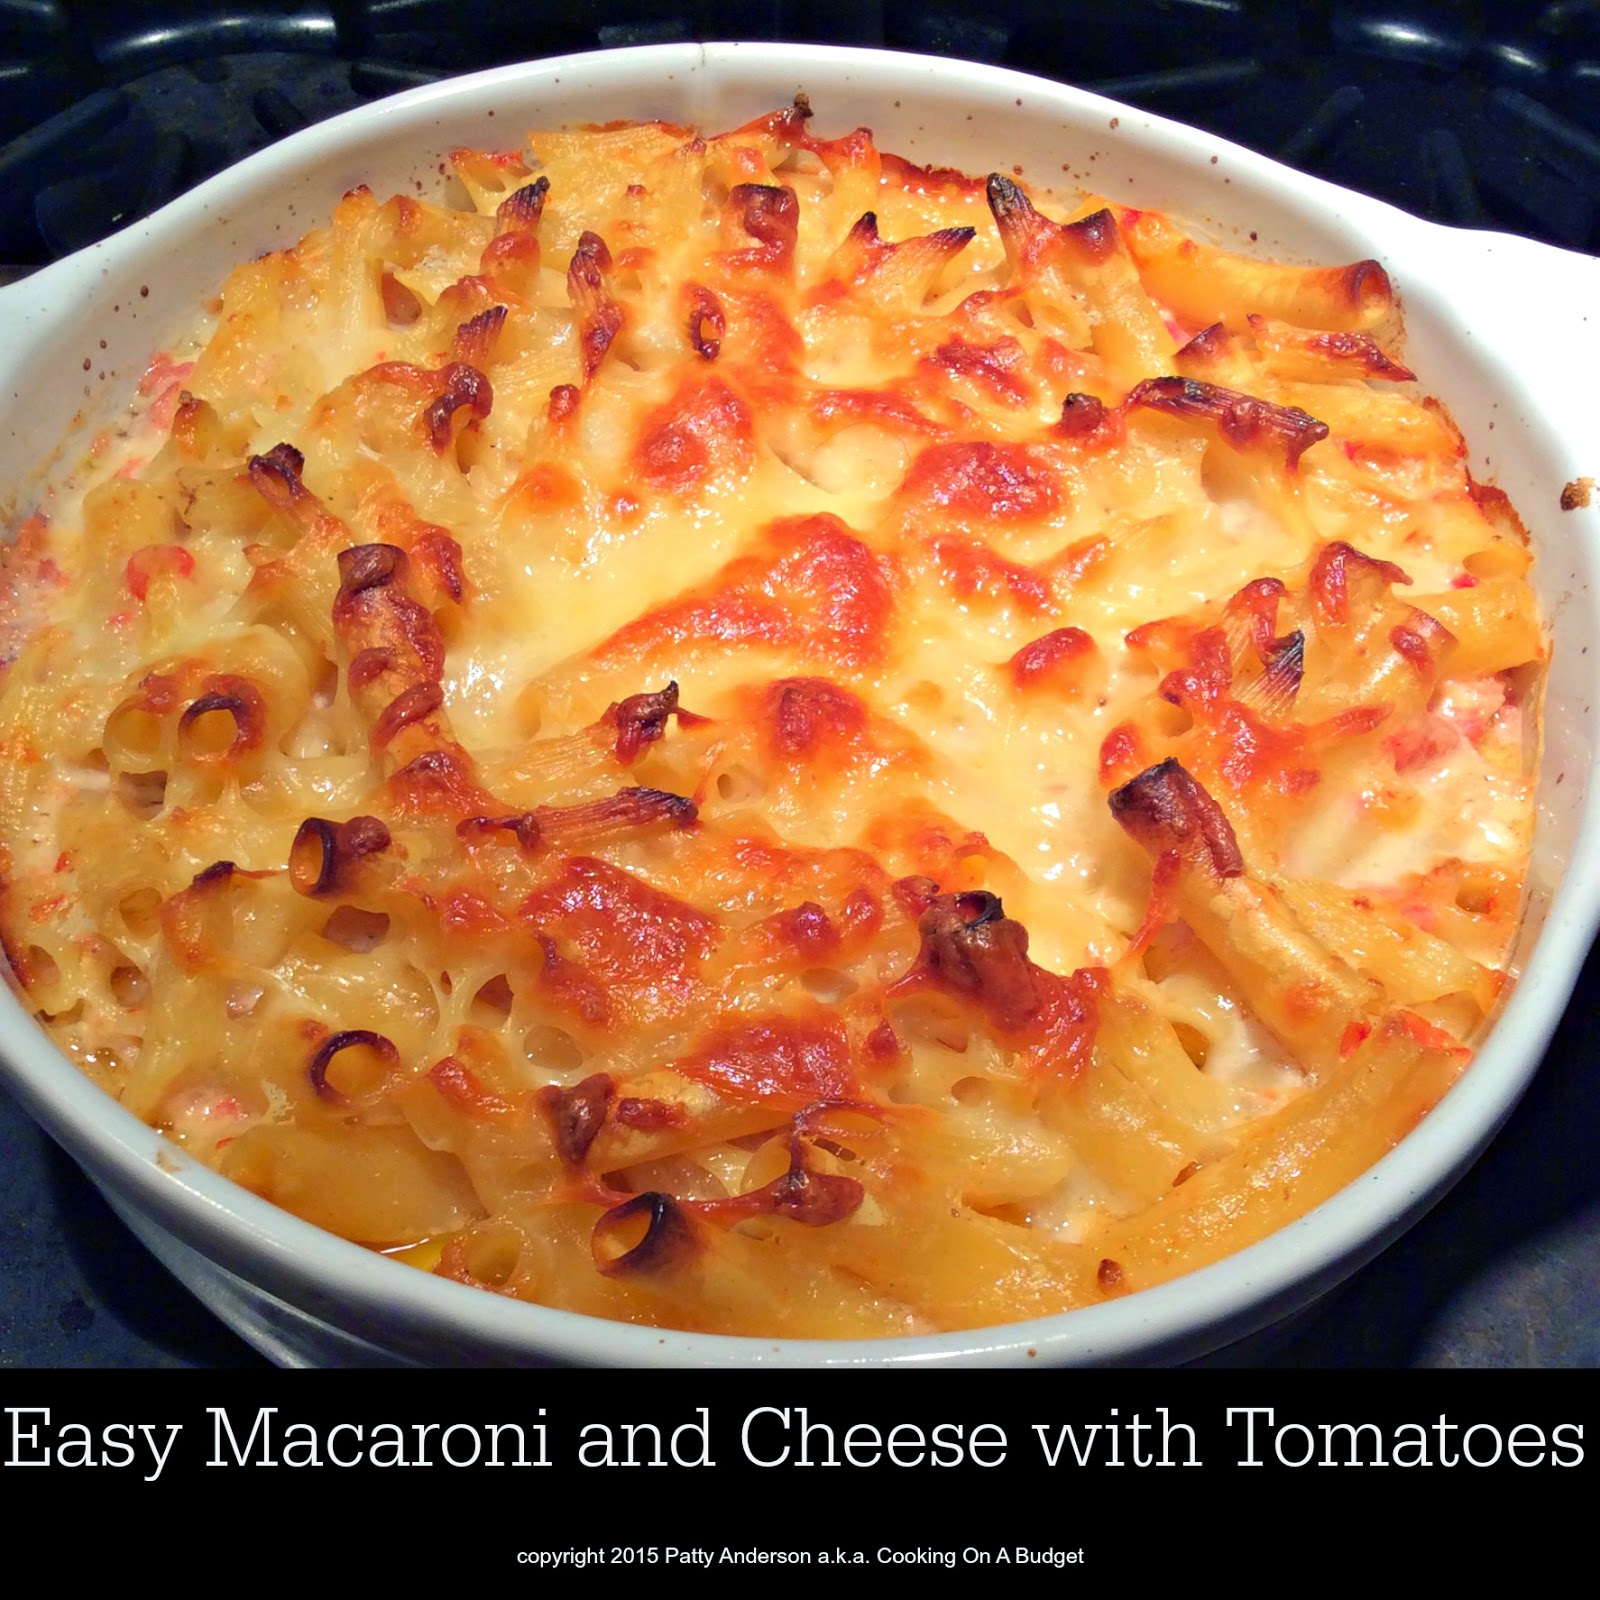 Cooking On A Budget: Easy Macaroni and Cheese with Tomatoes